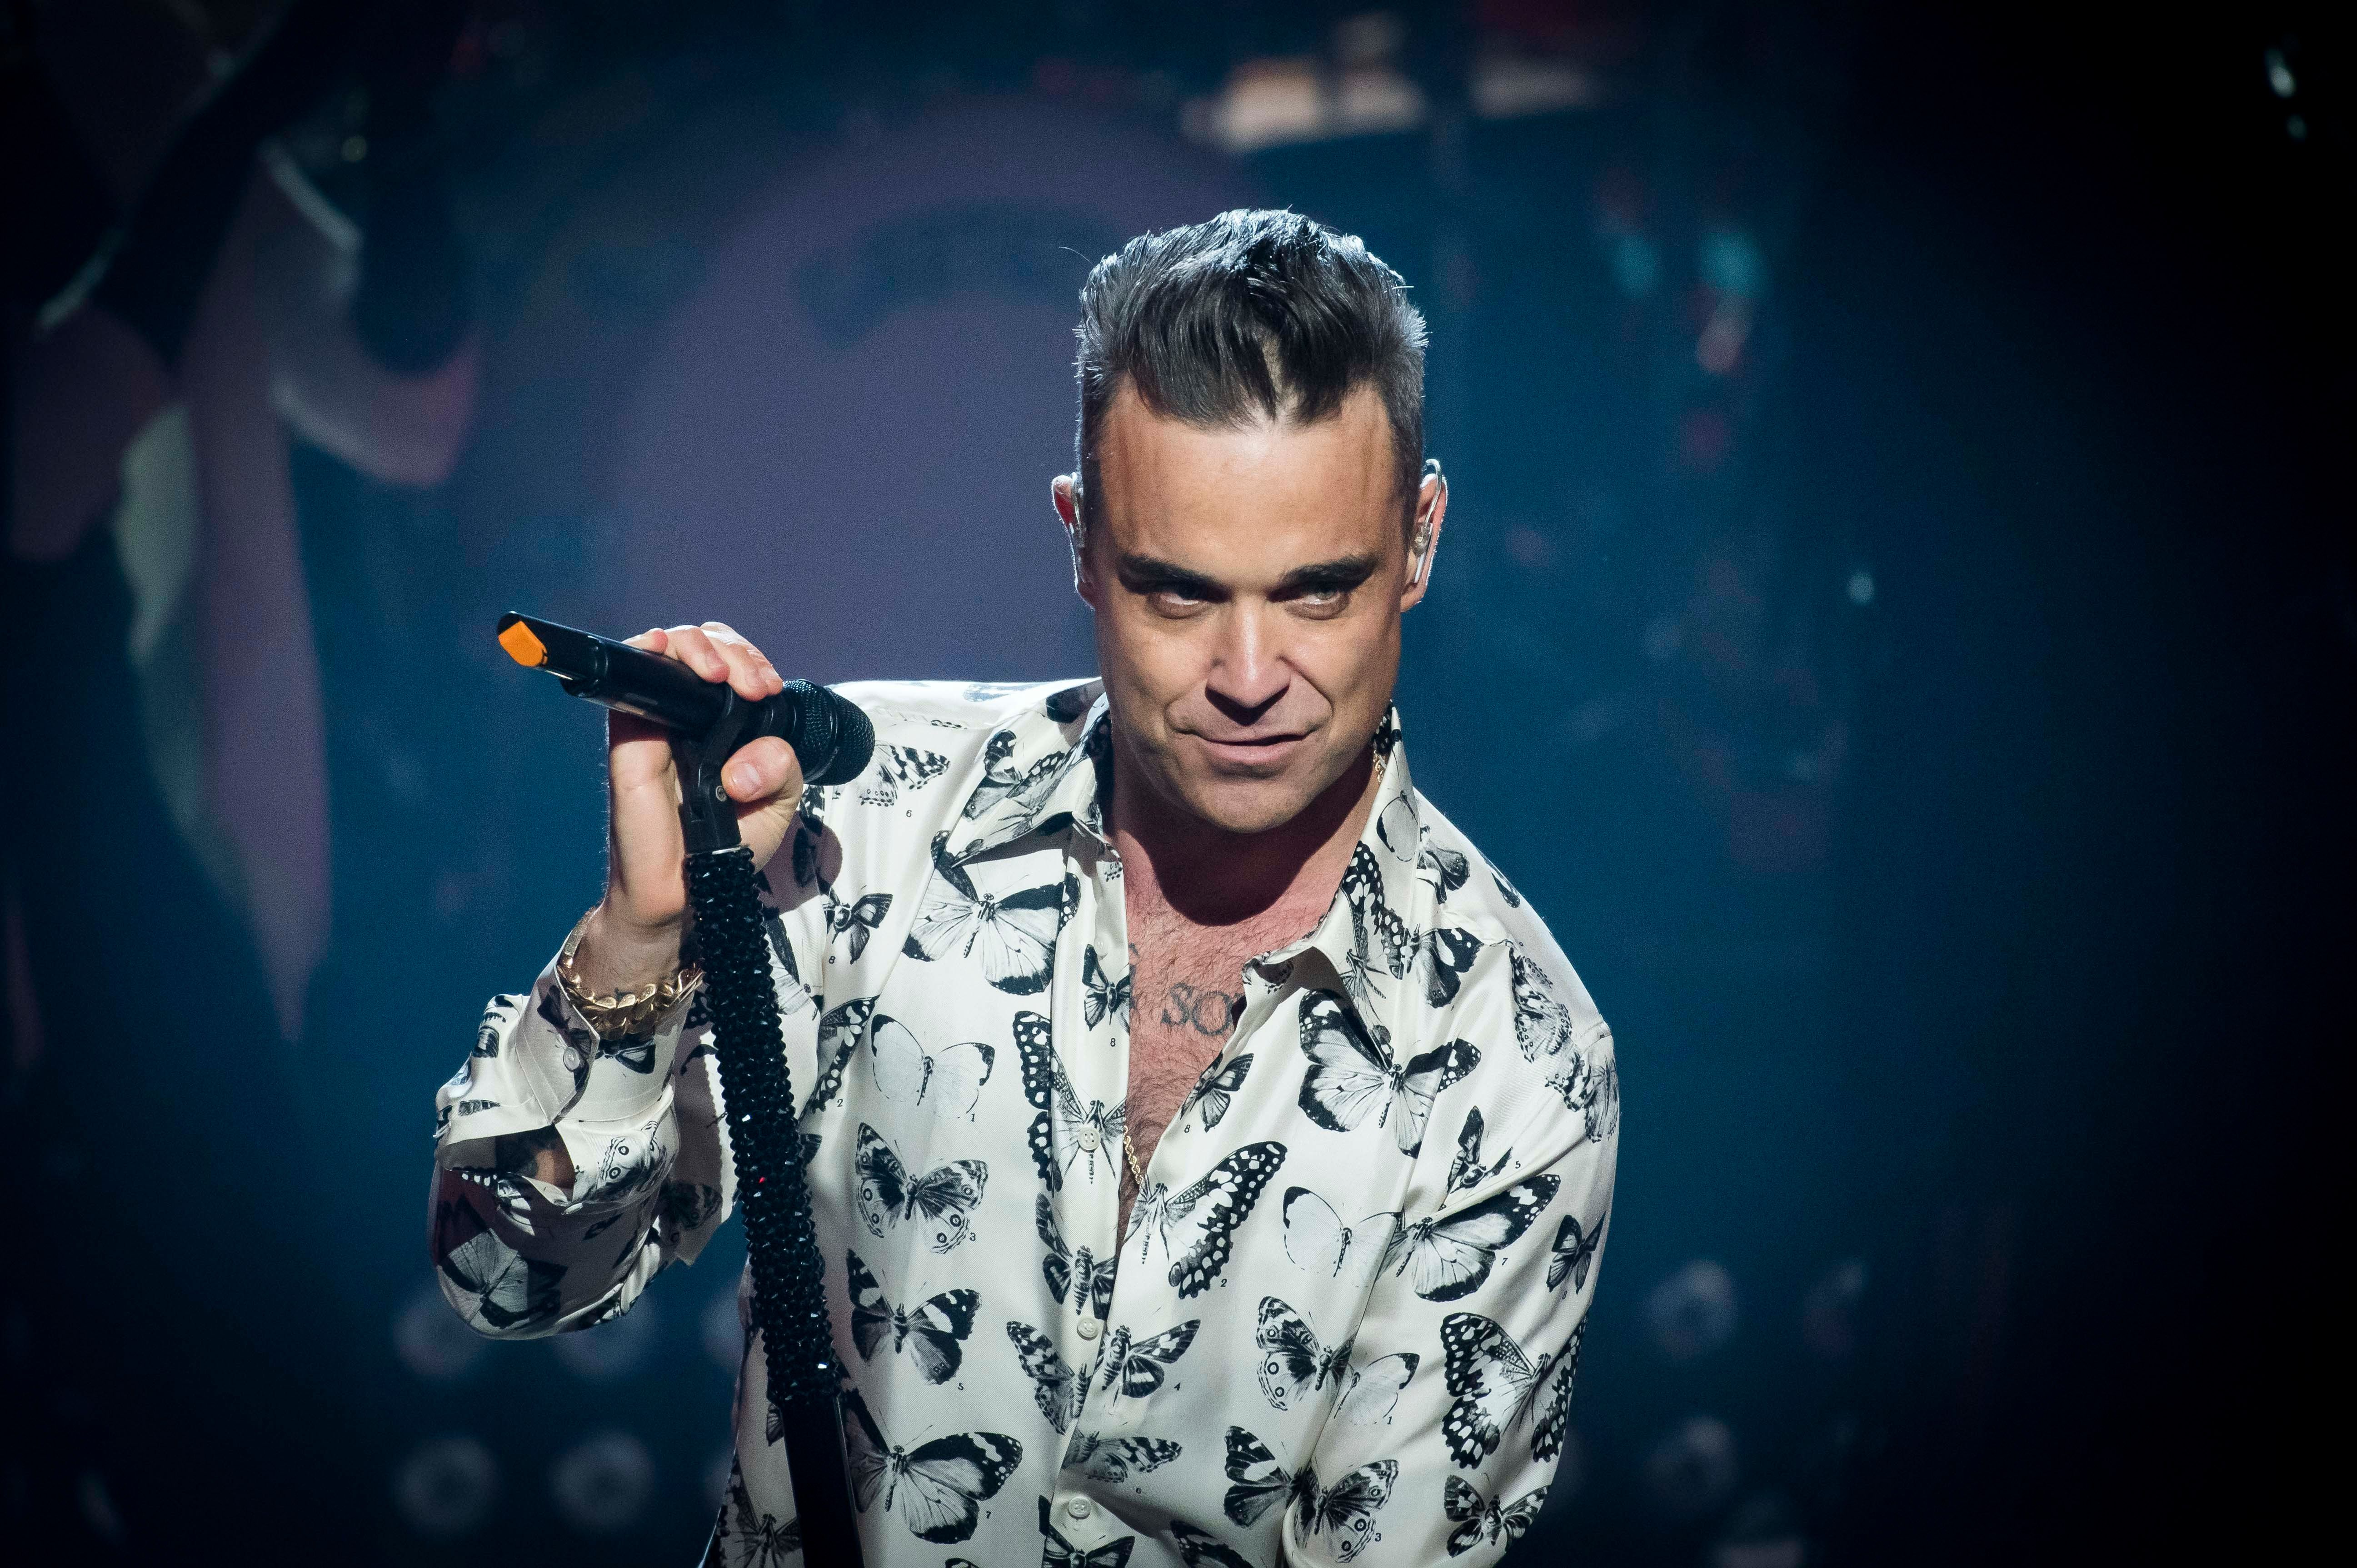 Robbie Williams Opens Up About Mental Health, Says Fame Will 'Kill